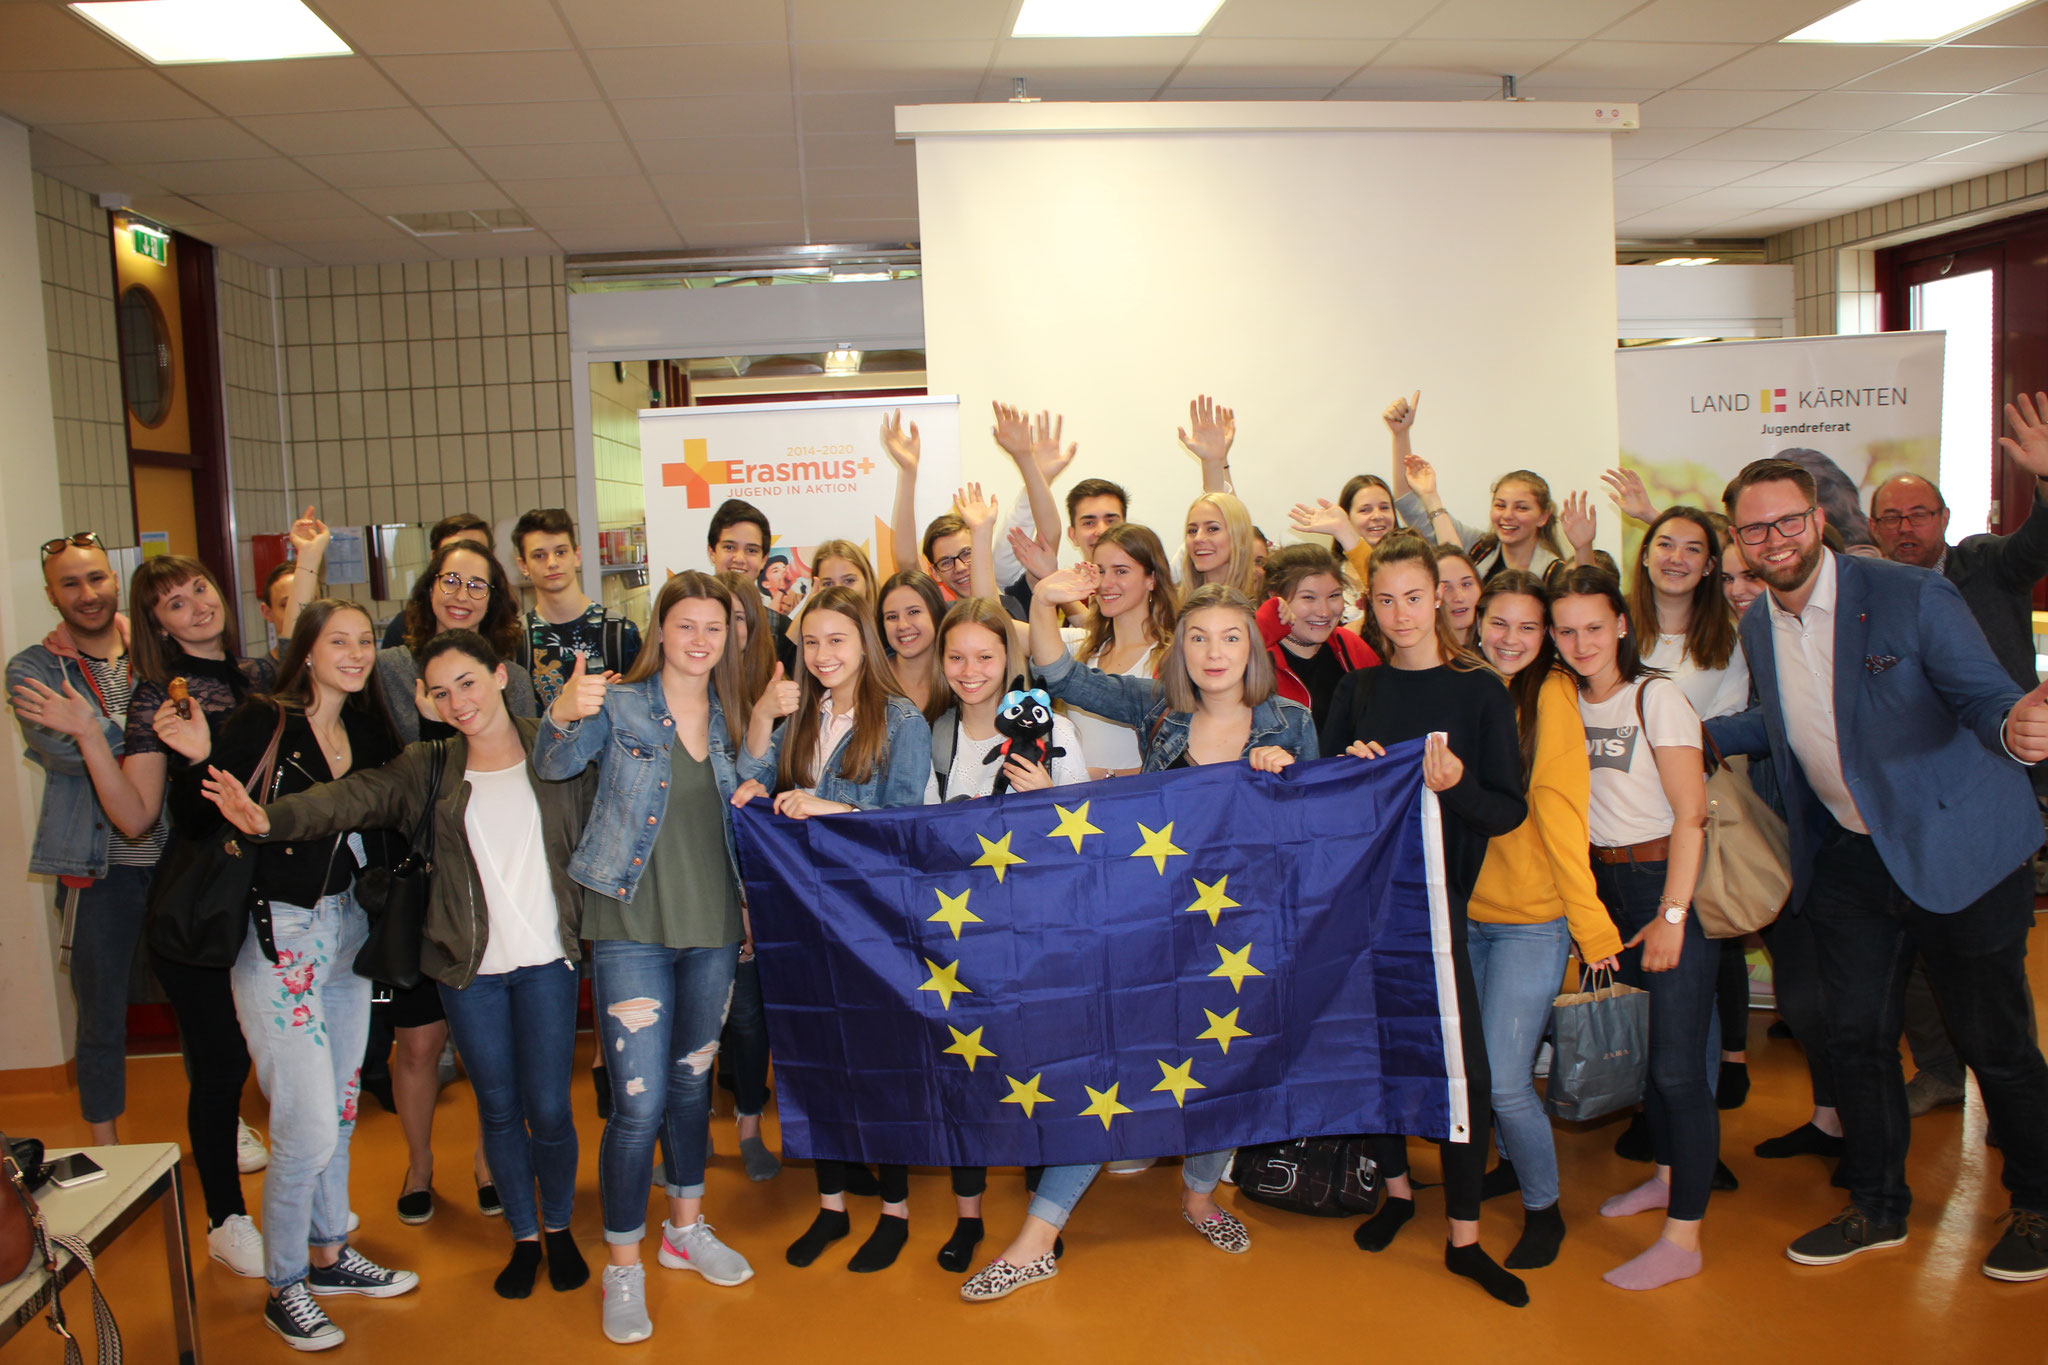 Europe Day 2018 at HLW St. Veit: presentations about ATE and other projects